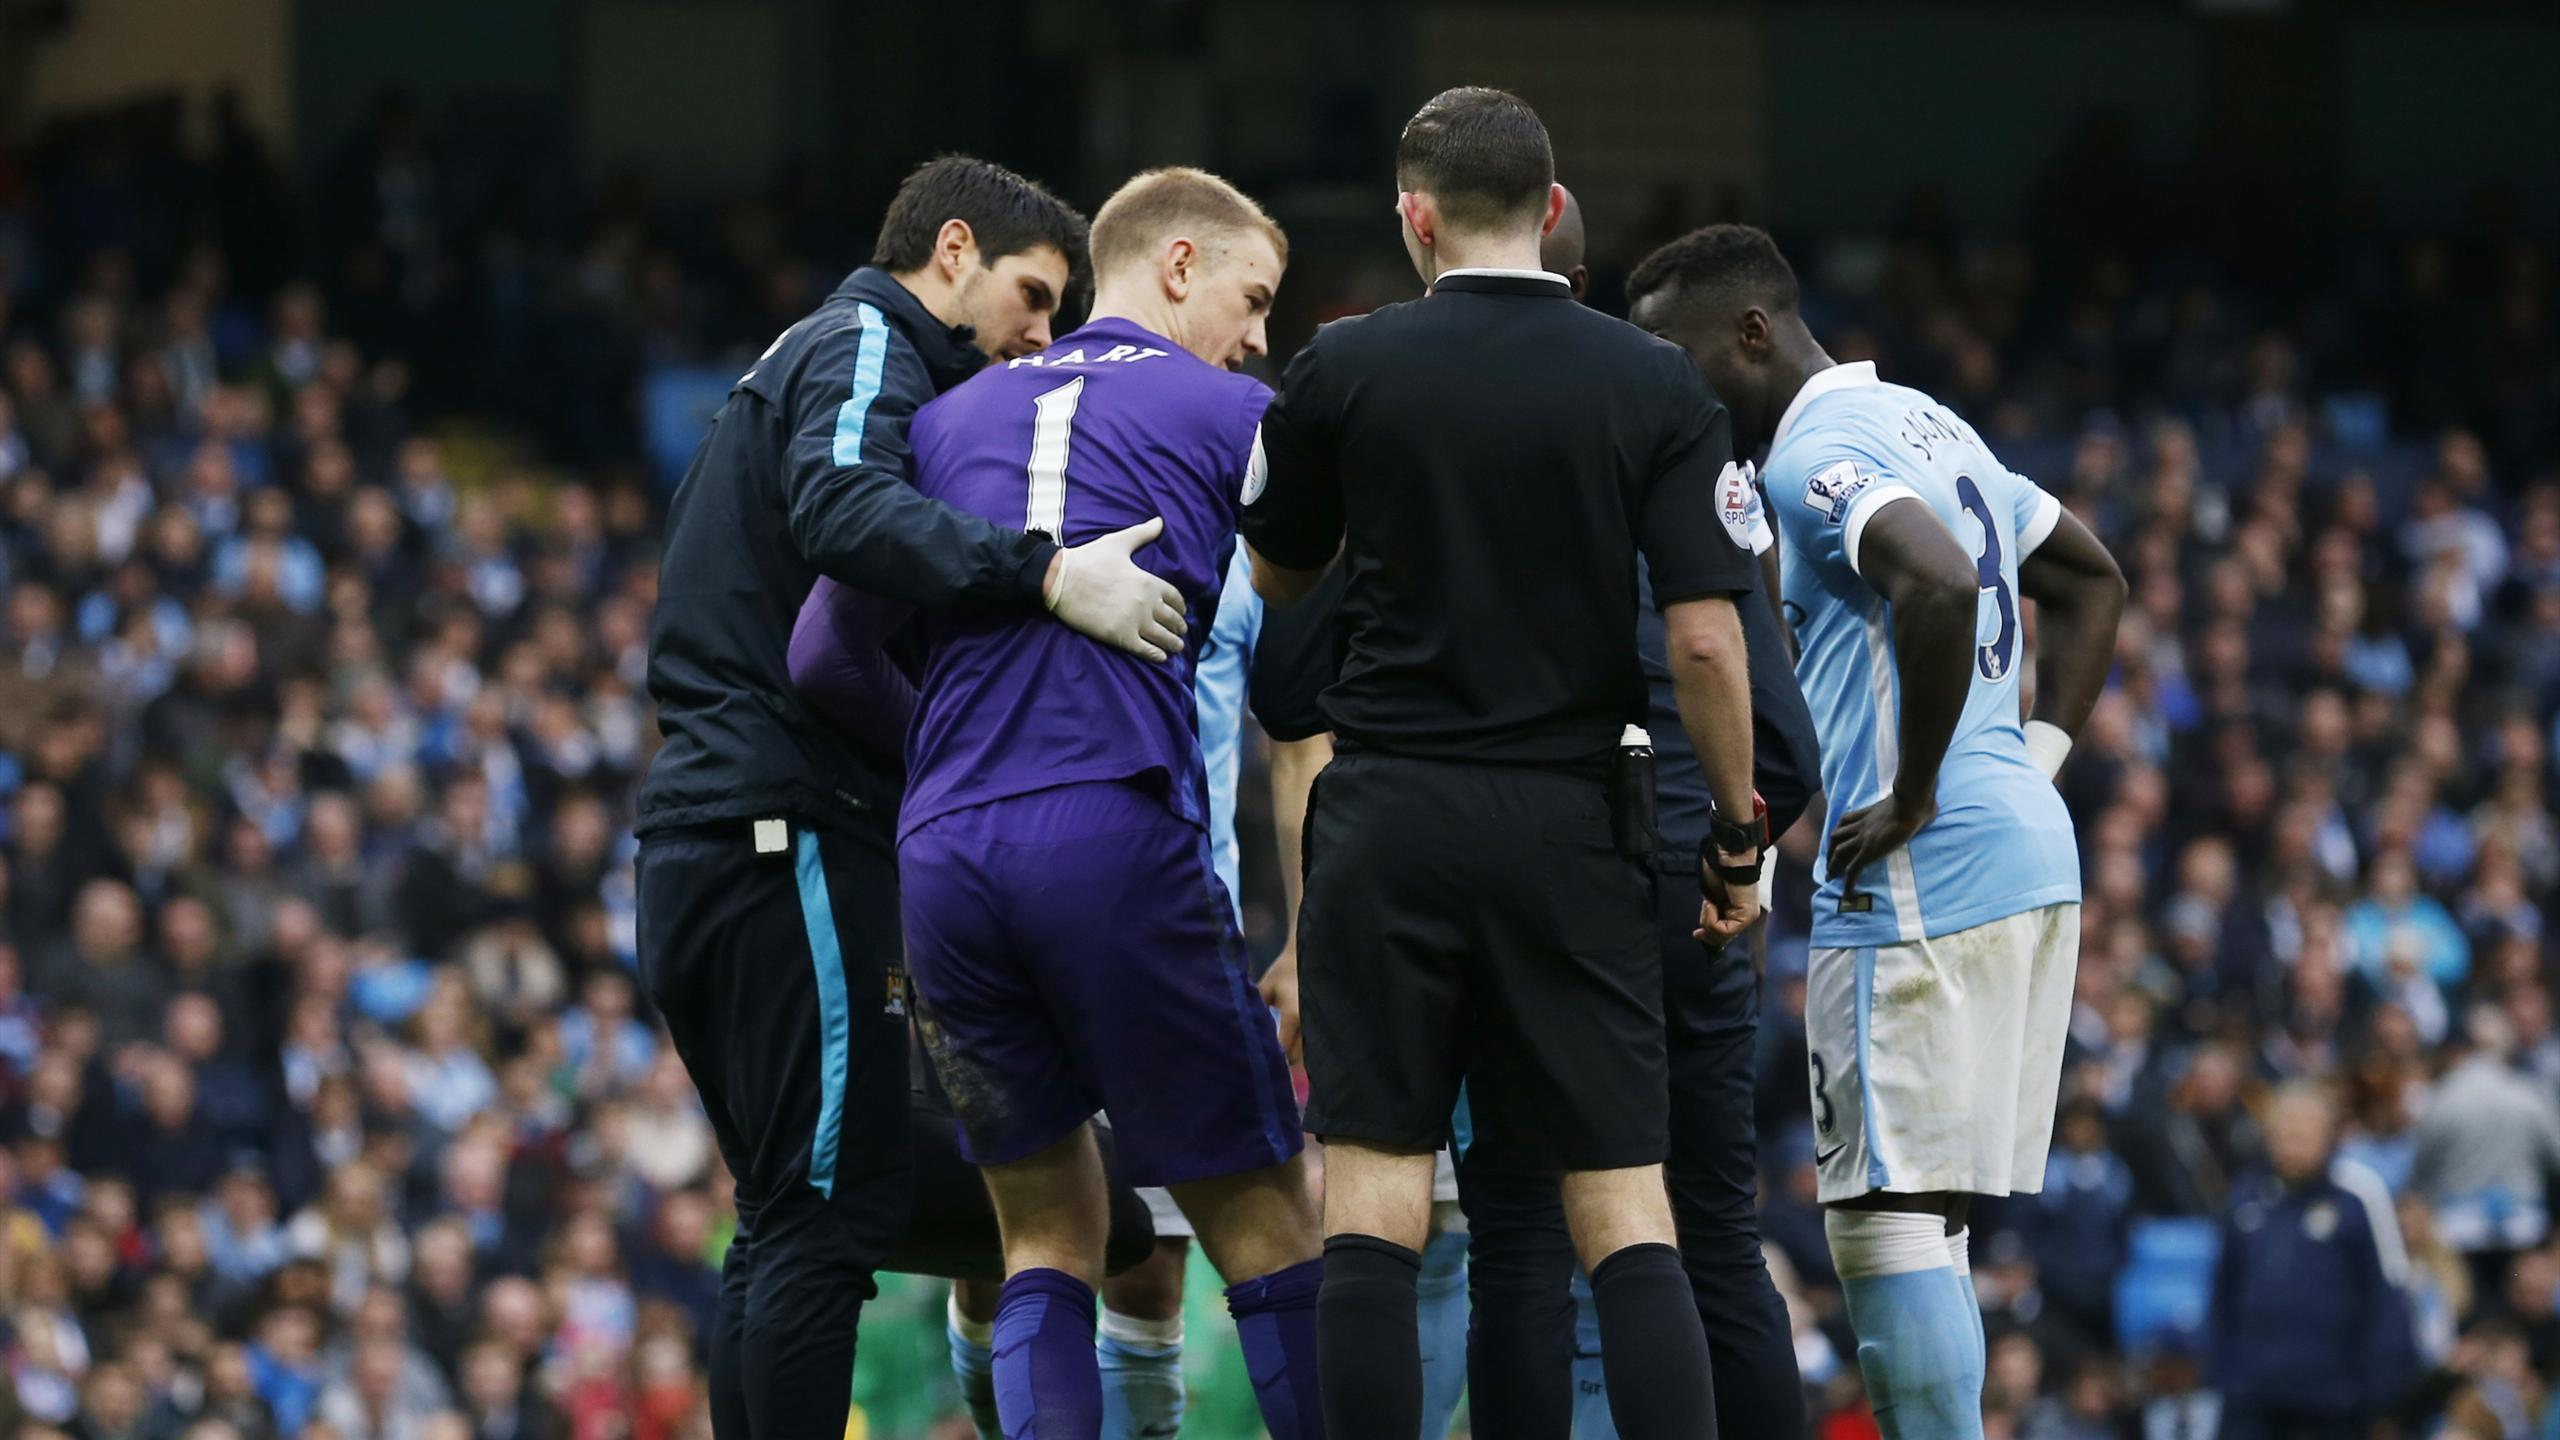 Manchester City's Joe Hart receives treatment after sustaining an injury